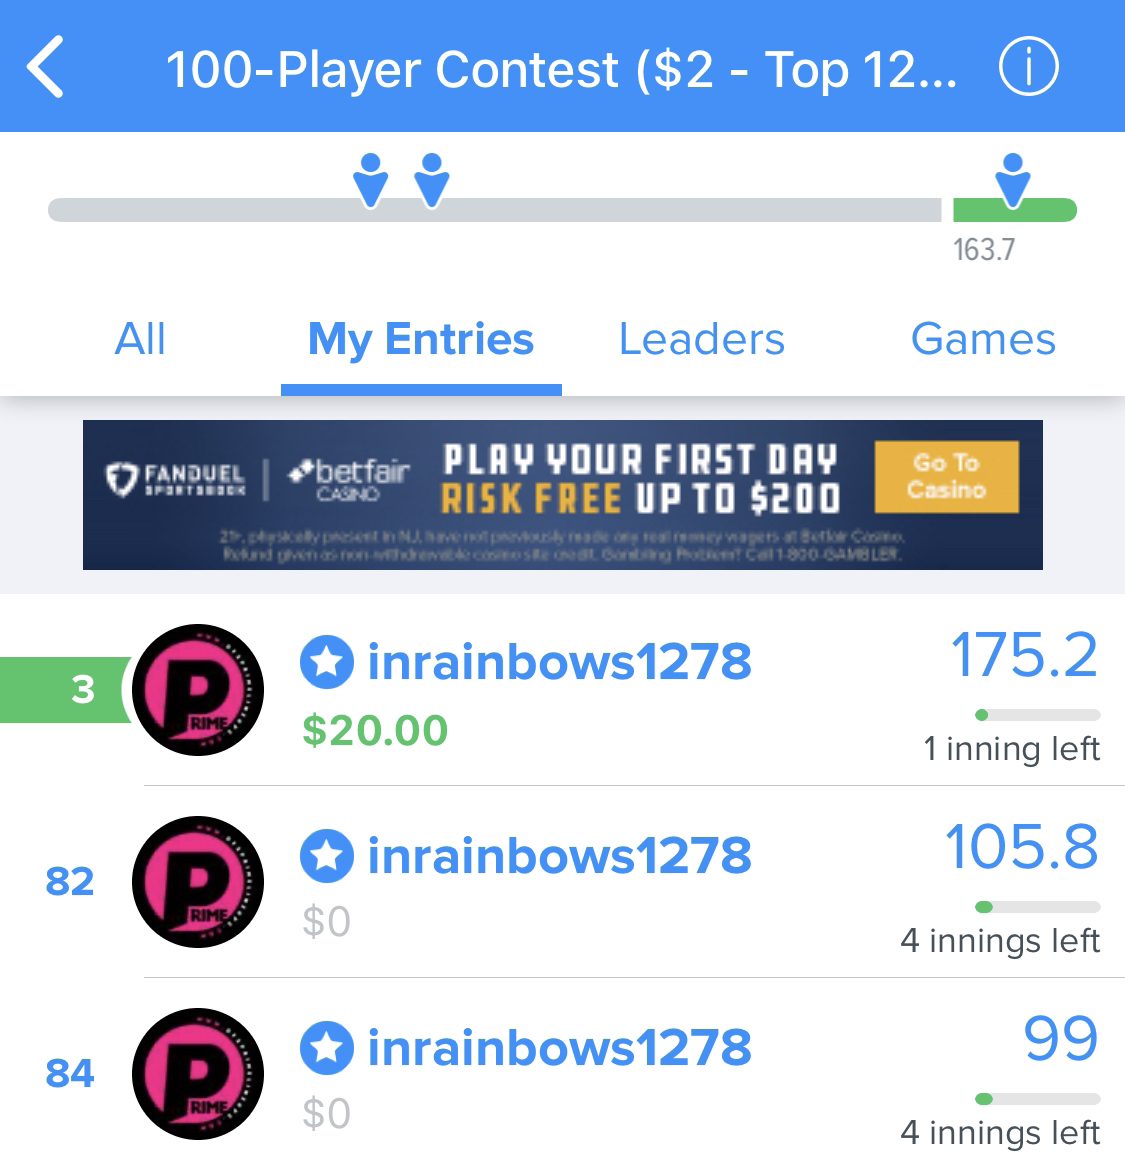 Join #FREE http://zpr.io/tk4Hy as another #win was just posted for Team Prime!  The #best #DailyFantasySports #DFScontent !  is http://zpr.io/6c8WF   After hours near takedown fanduel #FanDuel #DraftKings #DFS #sportspicks #NBA #NFL #MLBpic.twitter.com/SKsgjOU2Gl